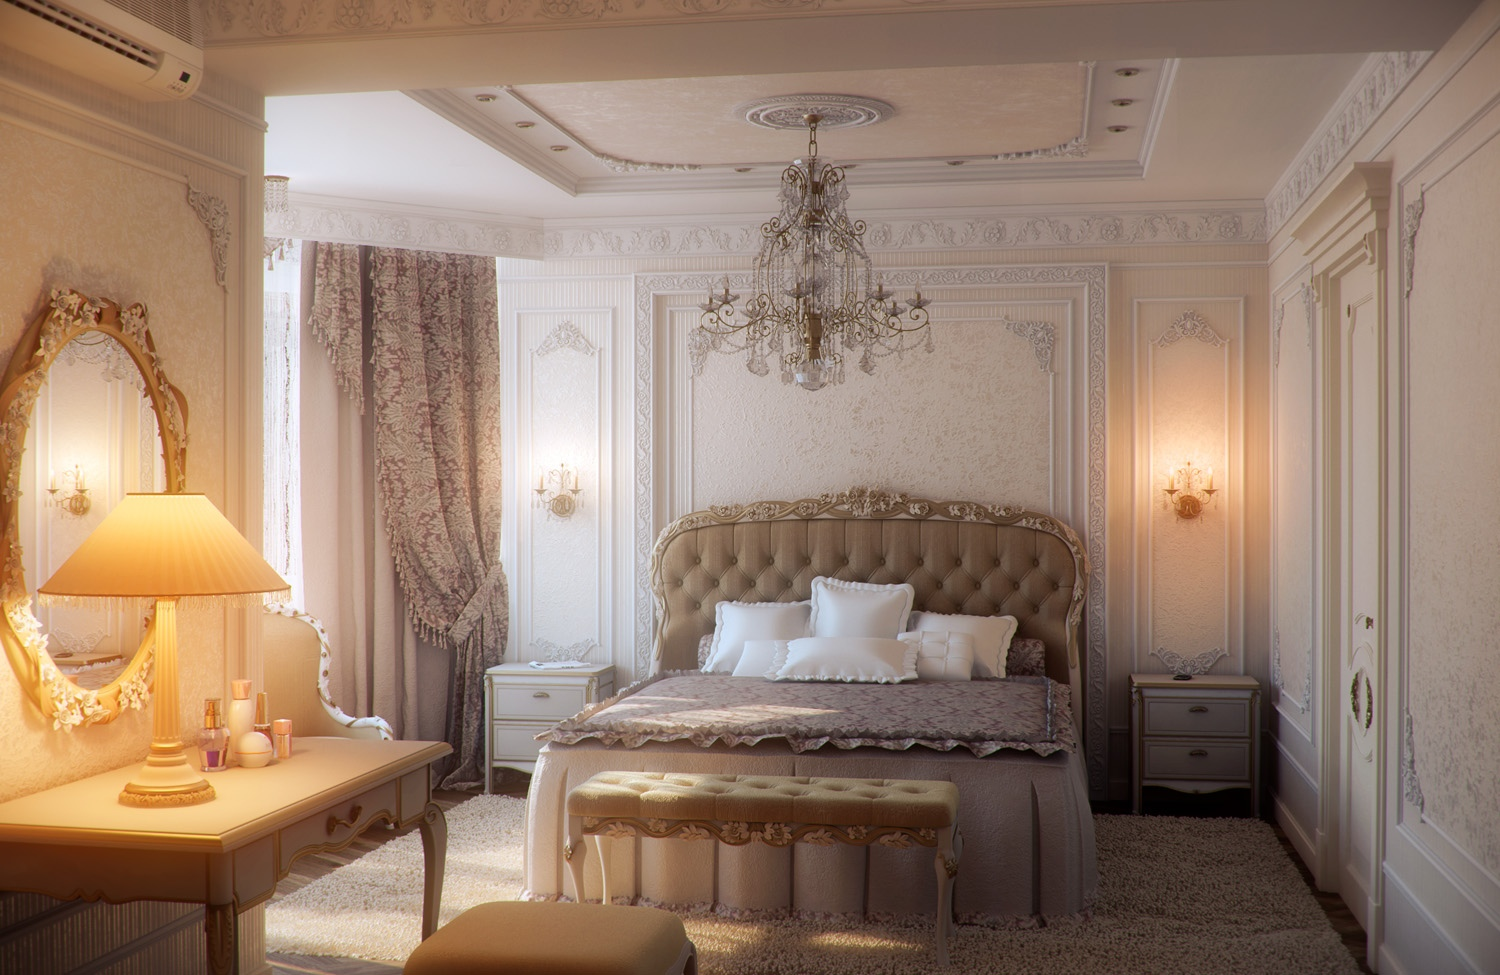 25 Traditional Bedroom Design For Your Home - The WoW Style